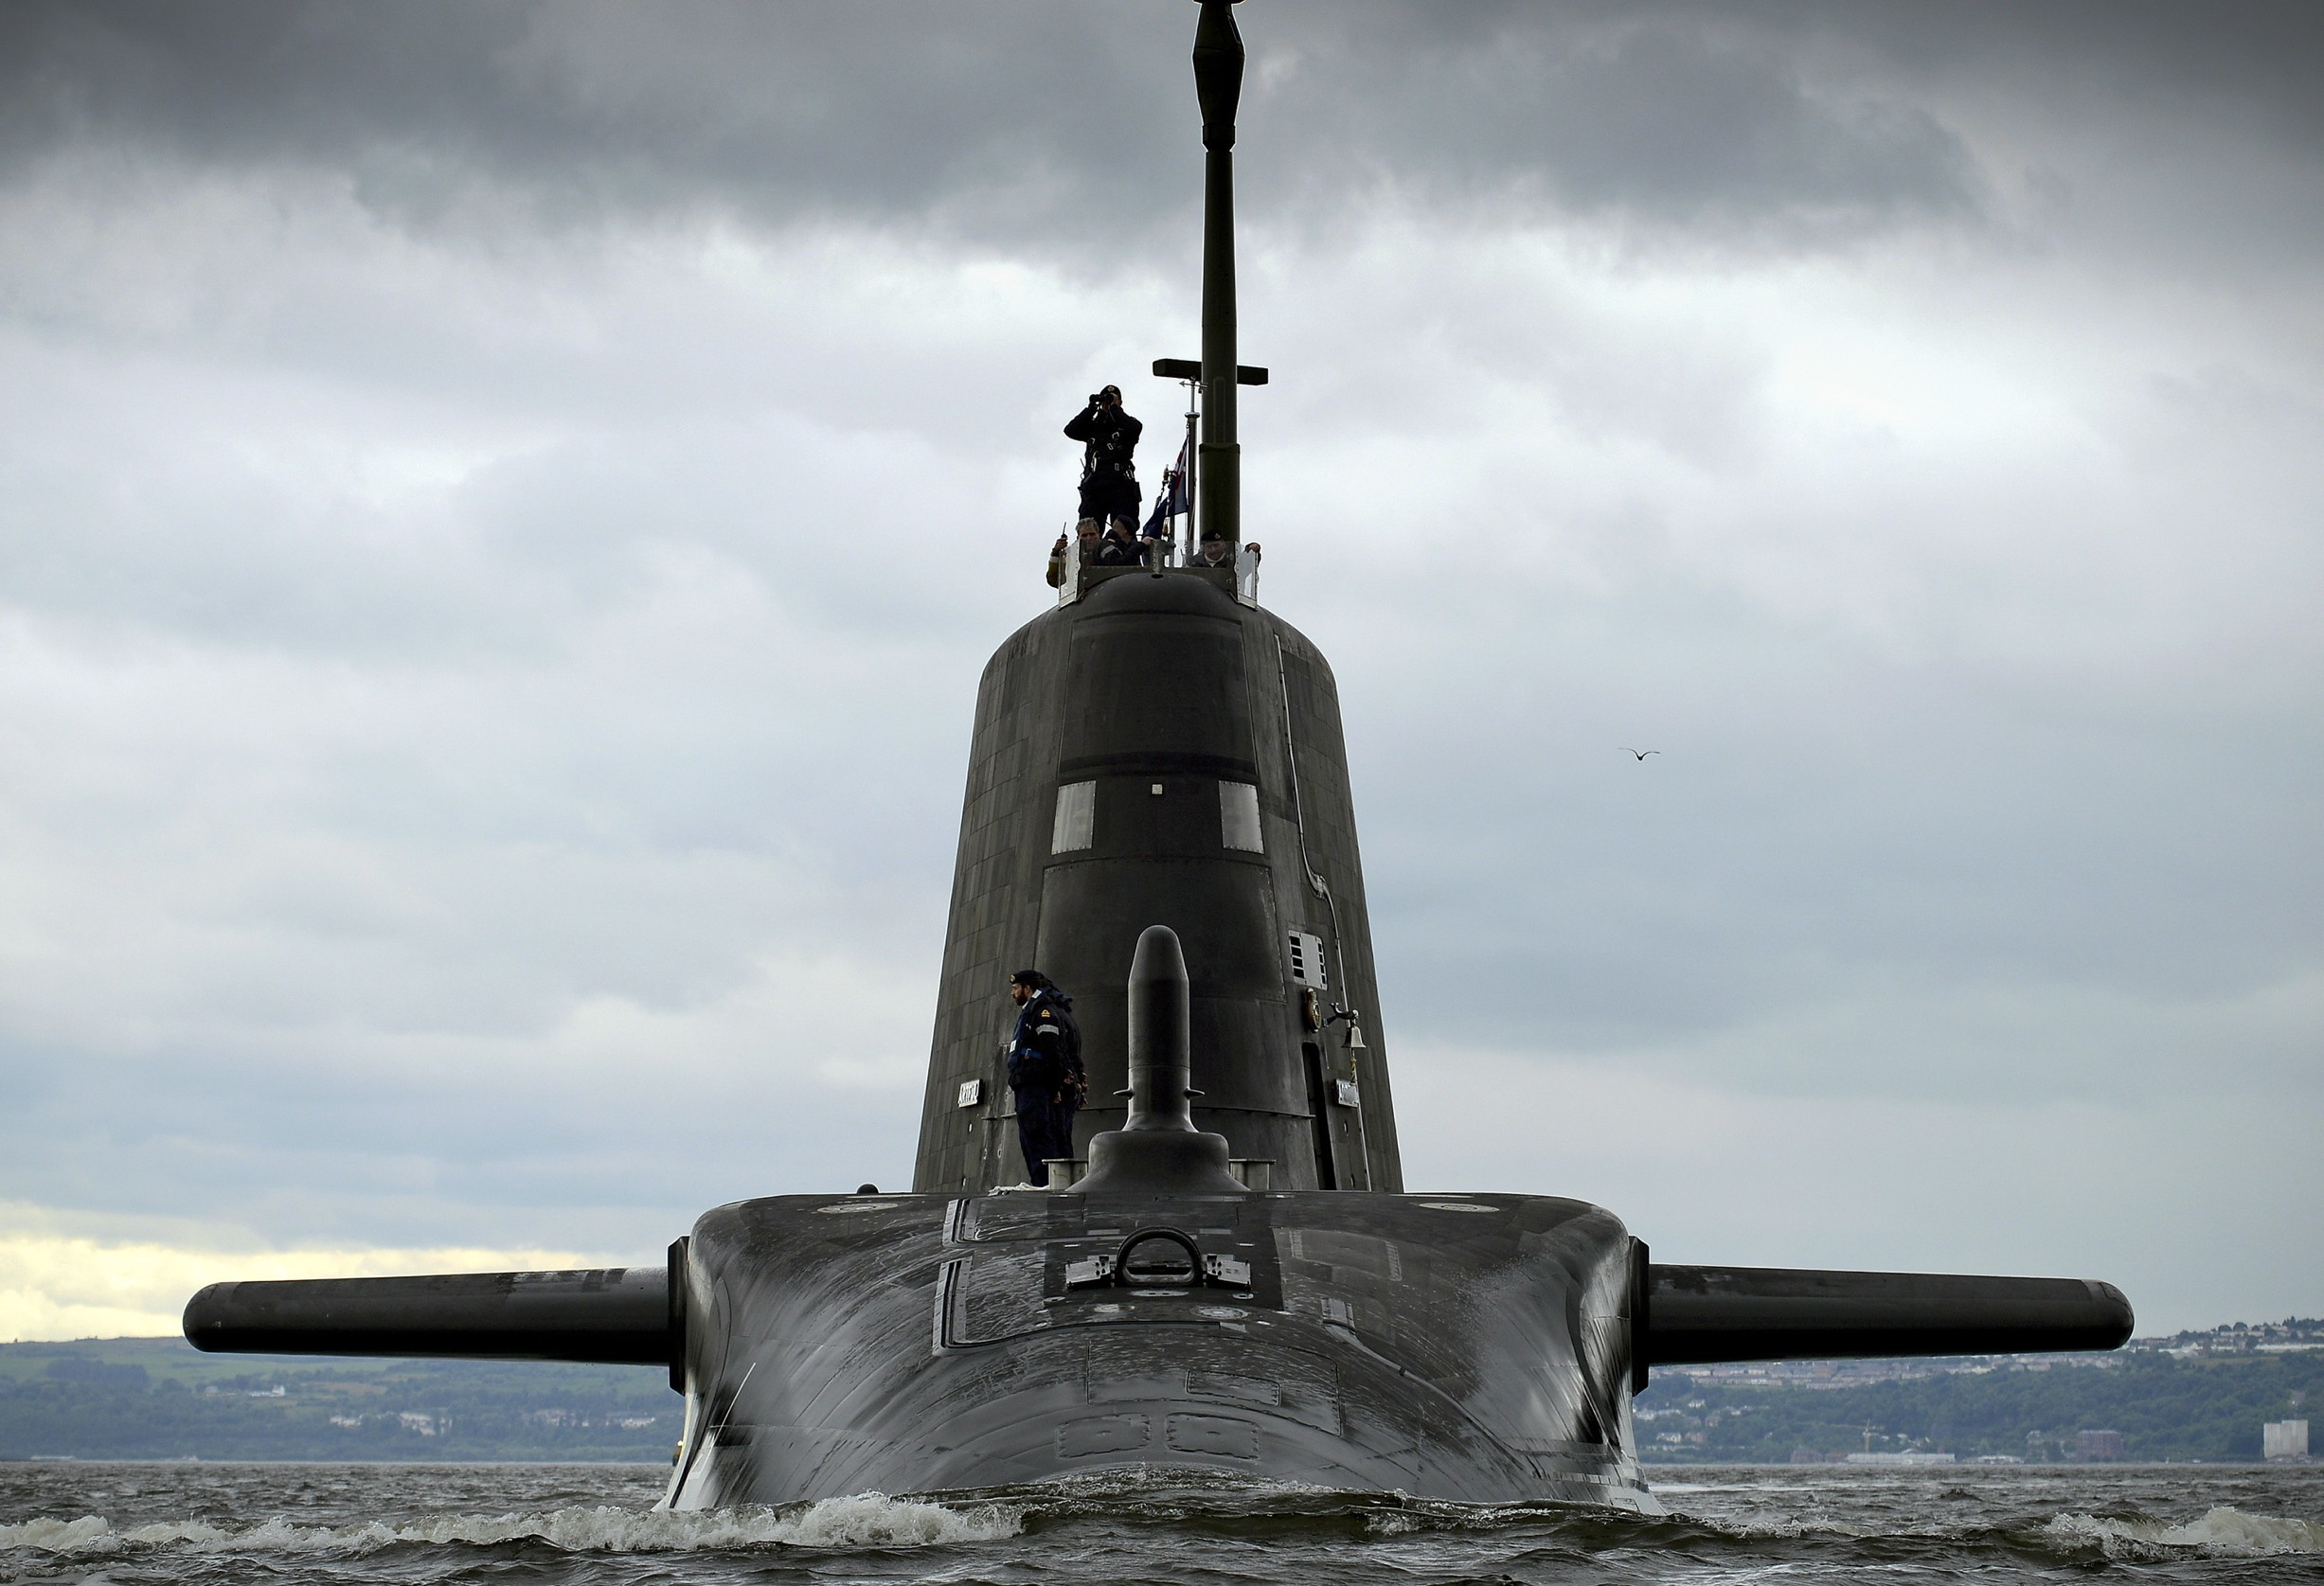 Faslane is the home of the UK's Trident submarines (Thomas McDonald / Royal Navy)